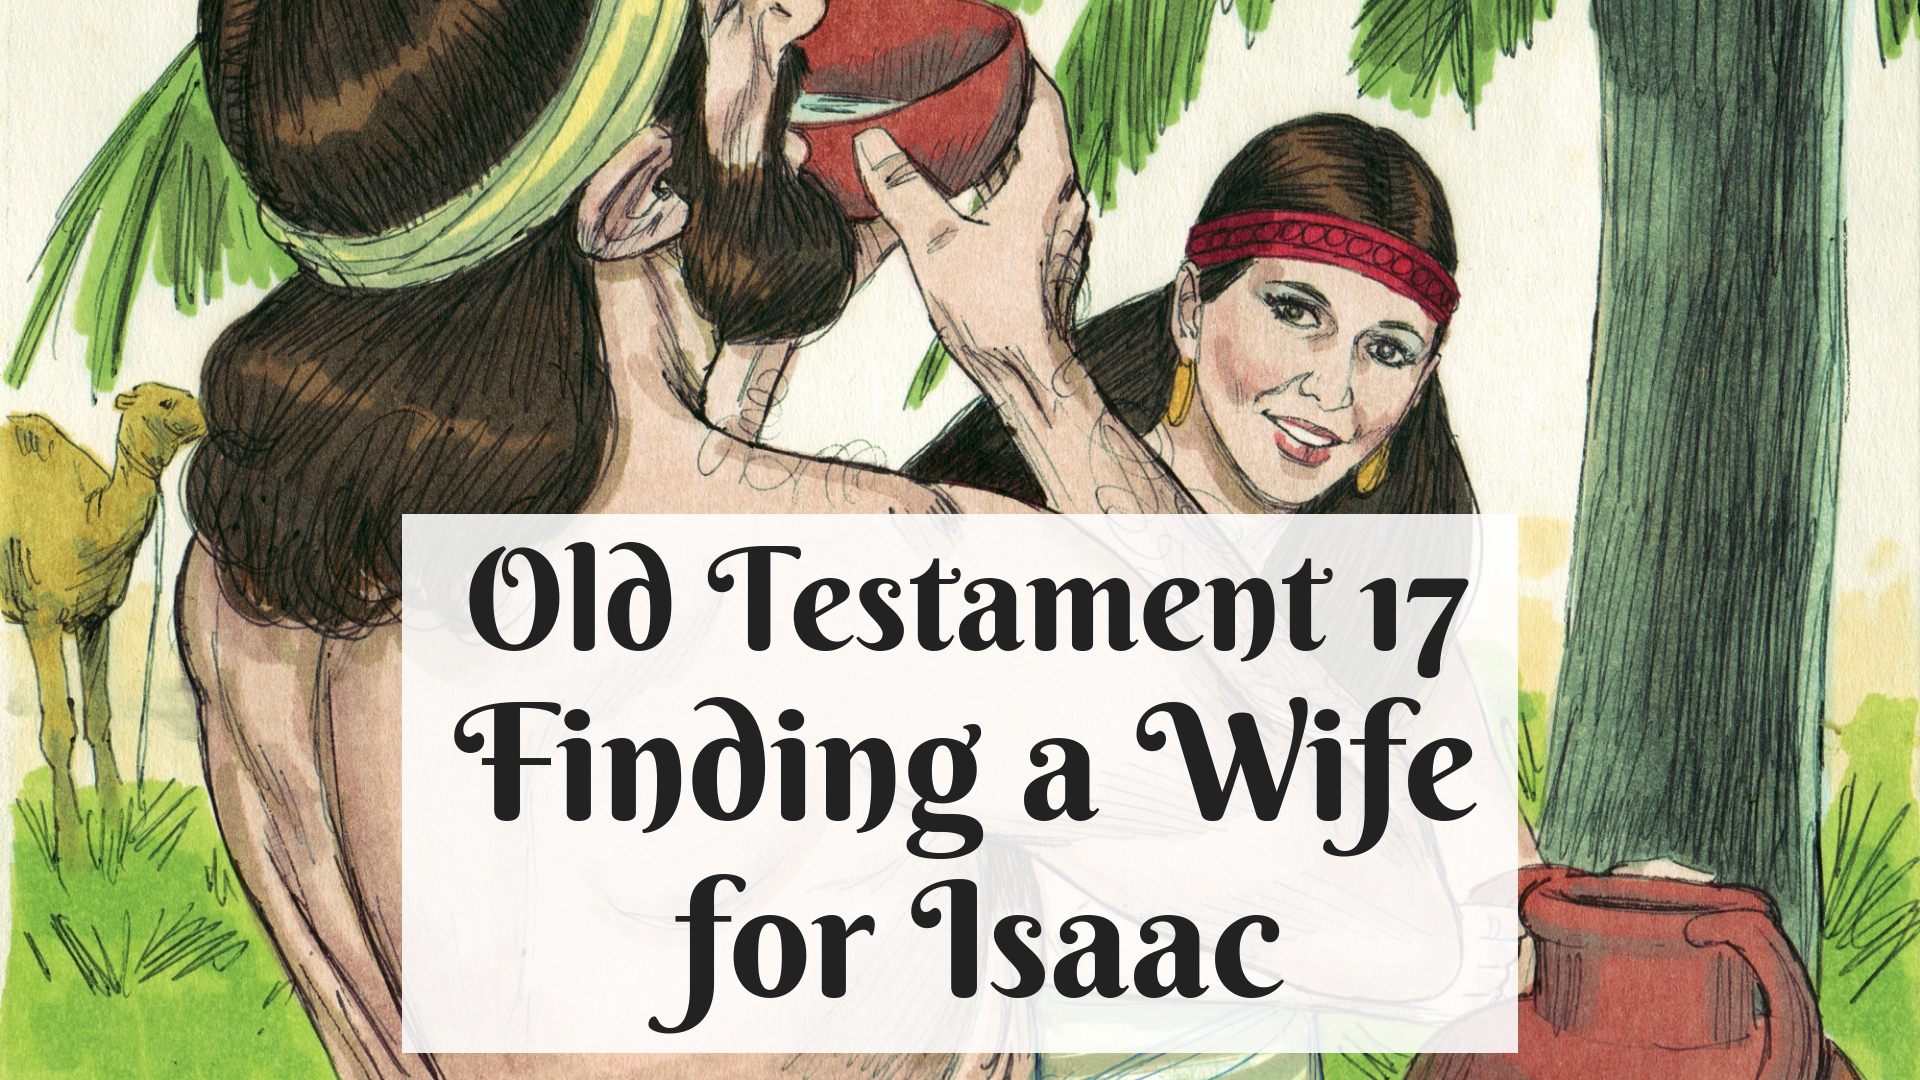 OT 017 - Finding a Wife for Isaac